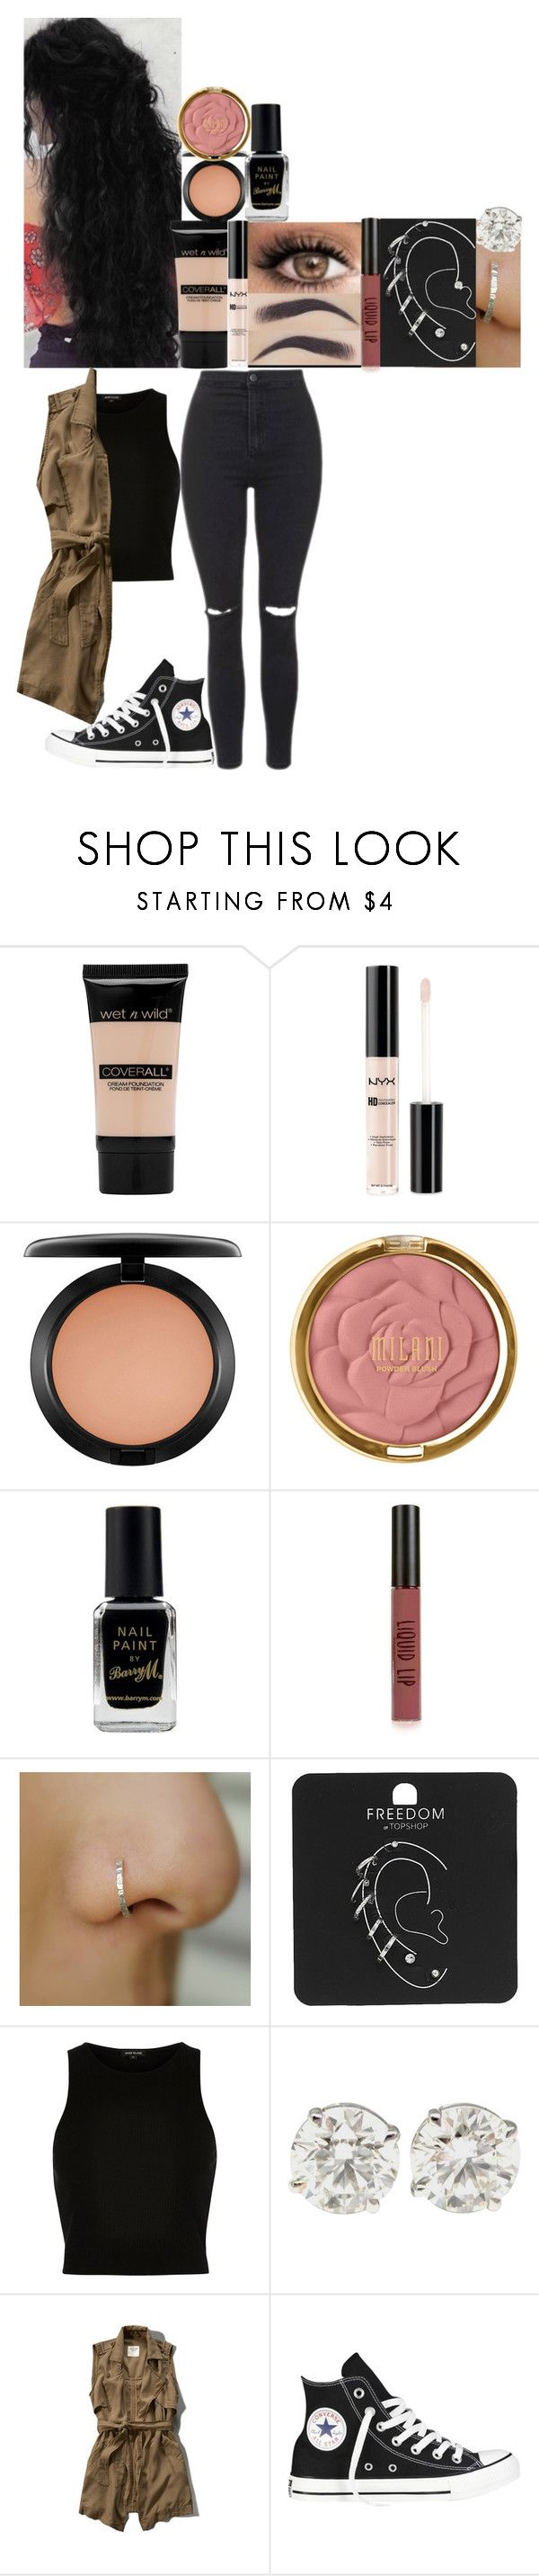 """""""Jurassic world // 2015"""" by fuckmeirwin ❤ liked on Polyvore featuring Wet n Wild, NYX, MAC Cosmetics, Milani, Barry M, Topshop, River Island, Abercrombie & Fitch and Converse"""